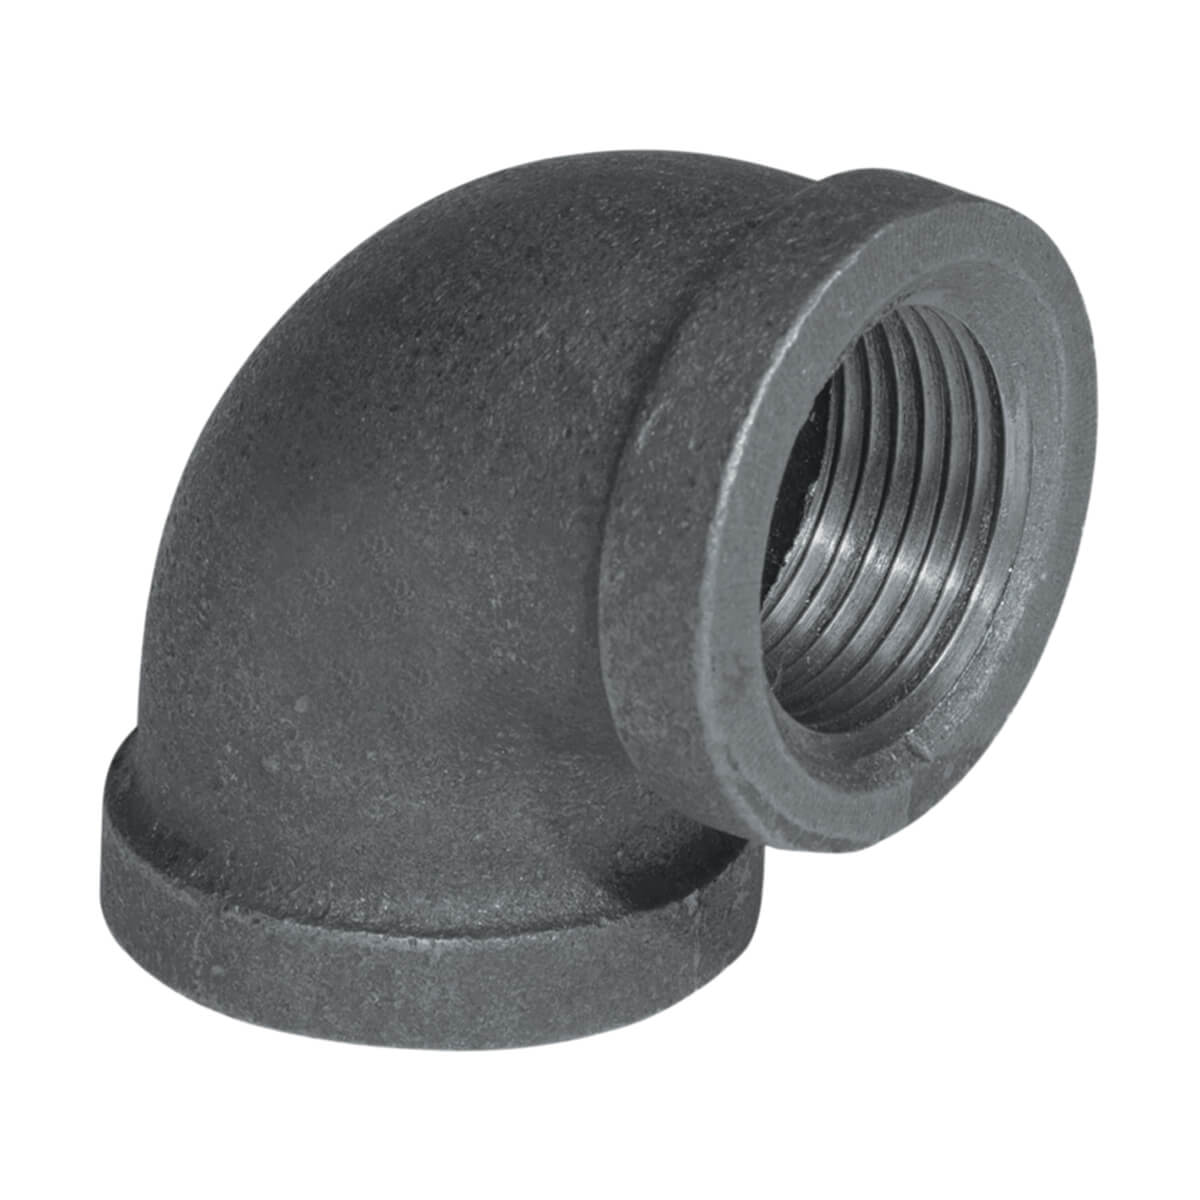 Fitting Black Iron 90° Elbow - 1-1/4-in